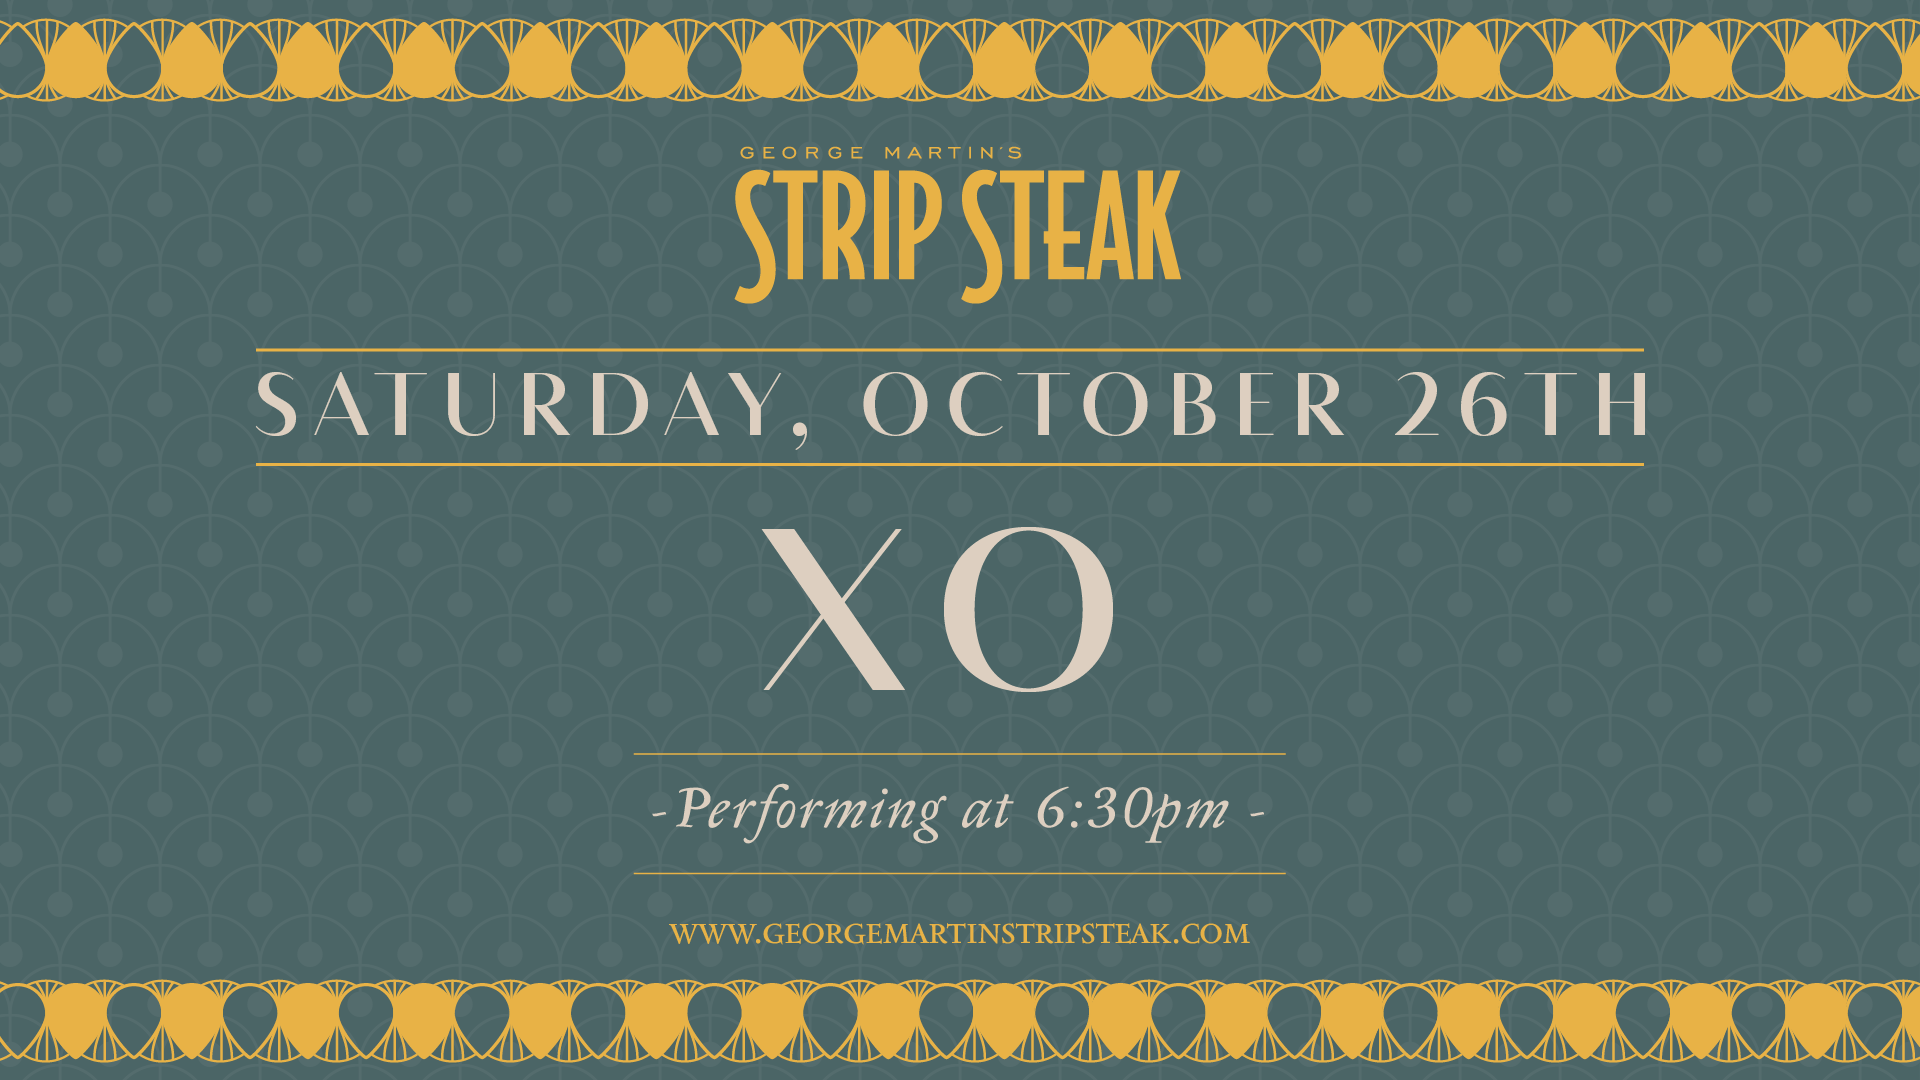 Flyer for Live Music with XO at Strip Steak on Saturday, October 26th at 6:30pm